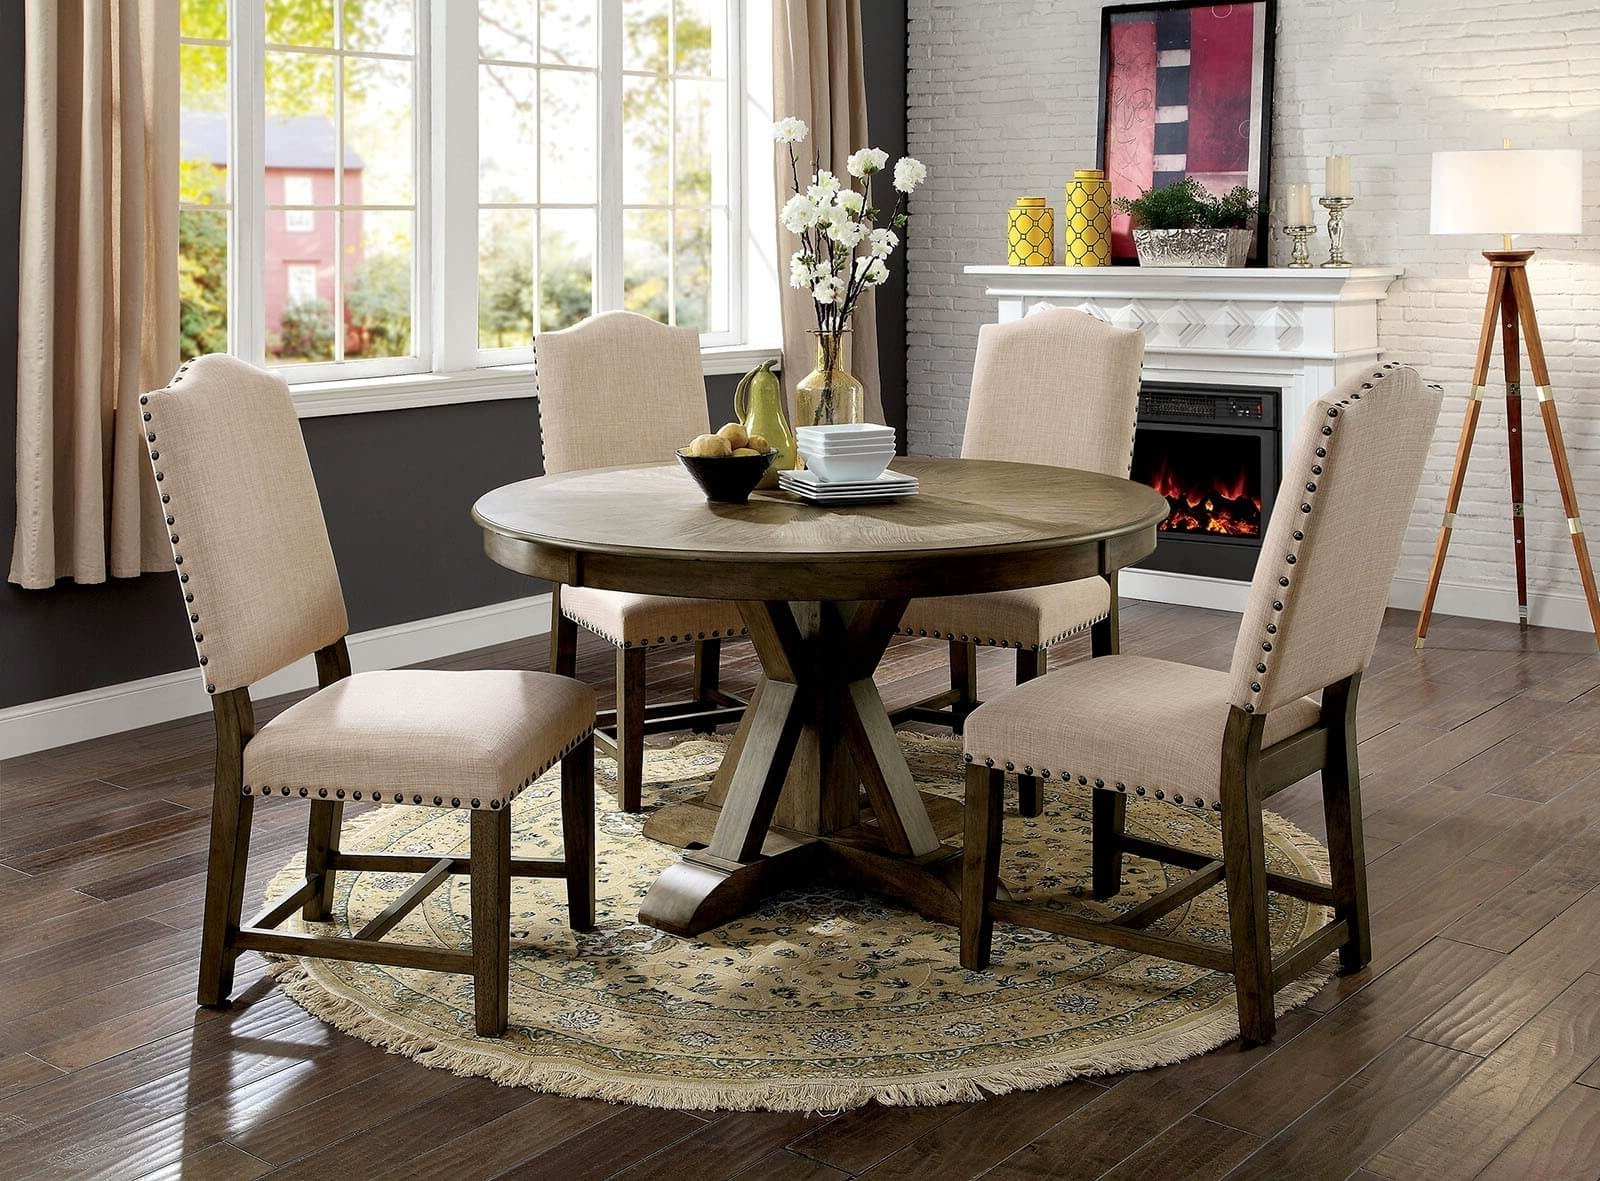 5 Piece Julia Round Dining Set Light Oak Finish – Usa Warehouse Pertaining To Most Recently Released Valencia 5 Piece Round Dining Sets With Uph Seat Side Chairs (View 3 of 25)